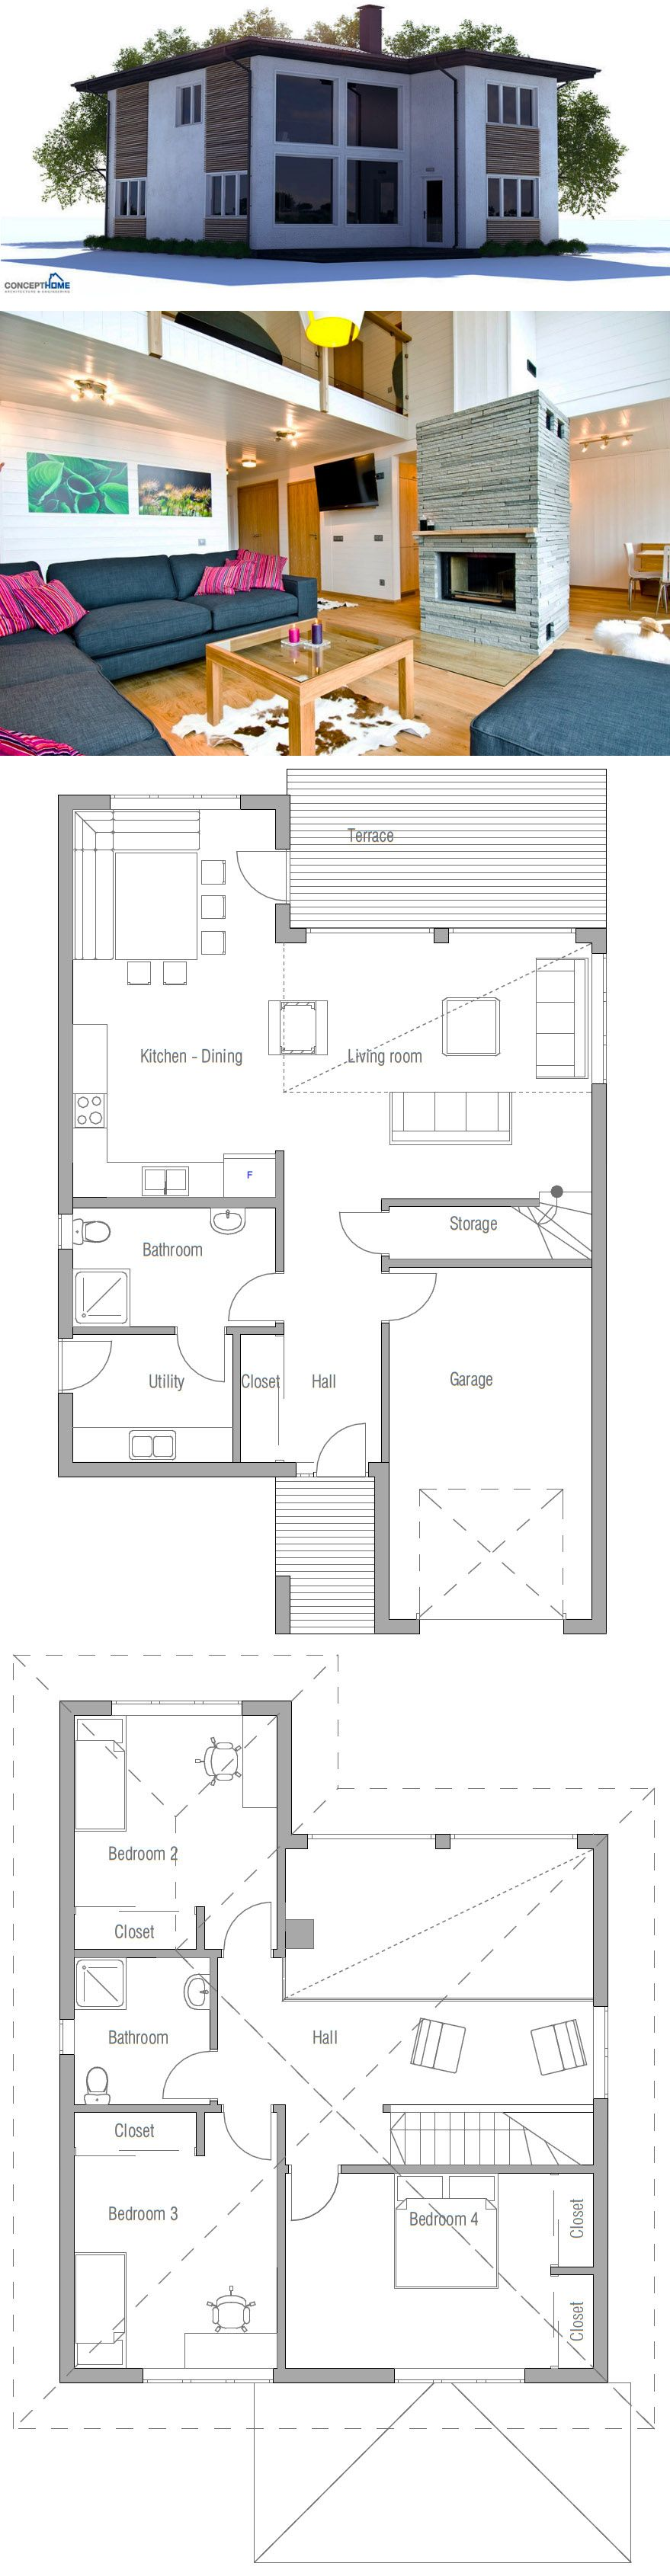 Small House Plans Small Home Affordable Home Plans Homedecor Houzz Archdaily Archilovers Dwell Souther House Layouts House Plans House Plans Farmhouse